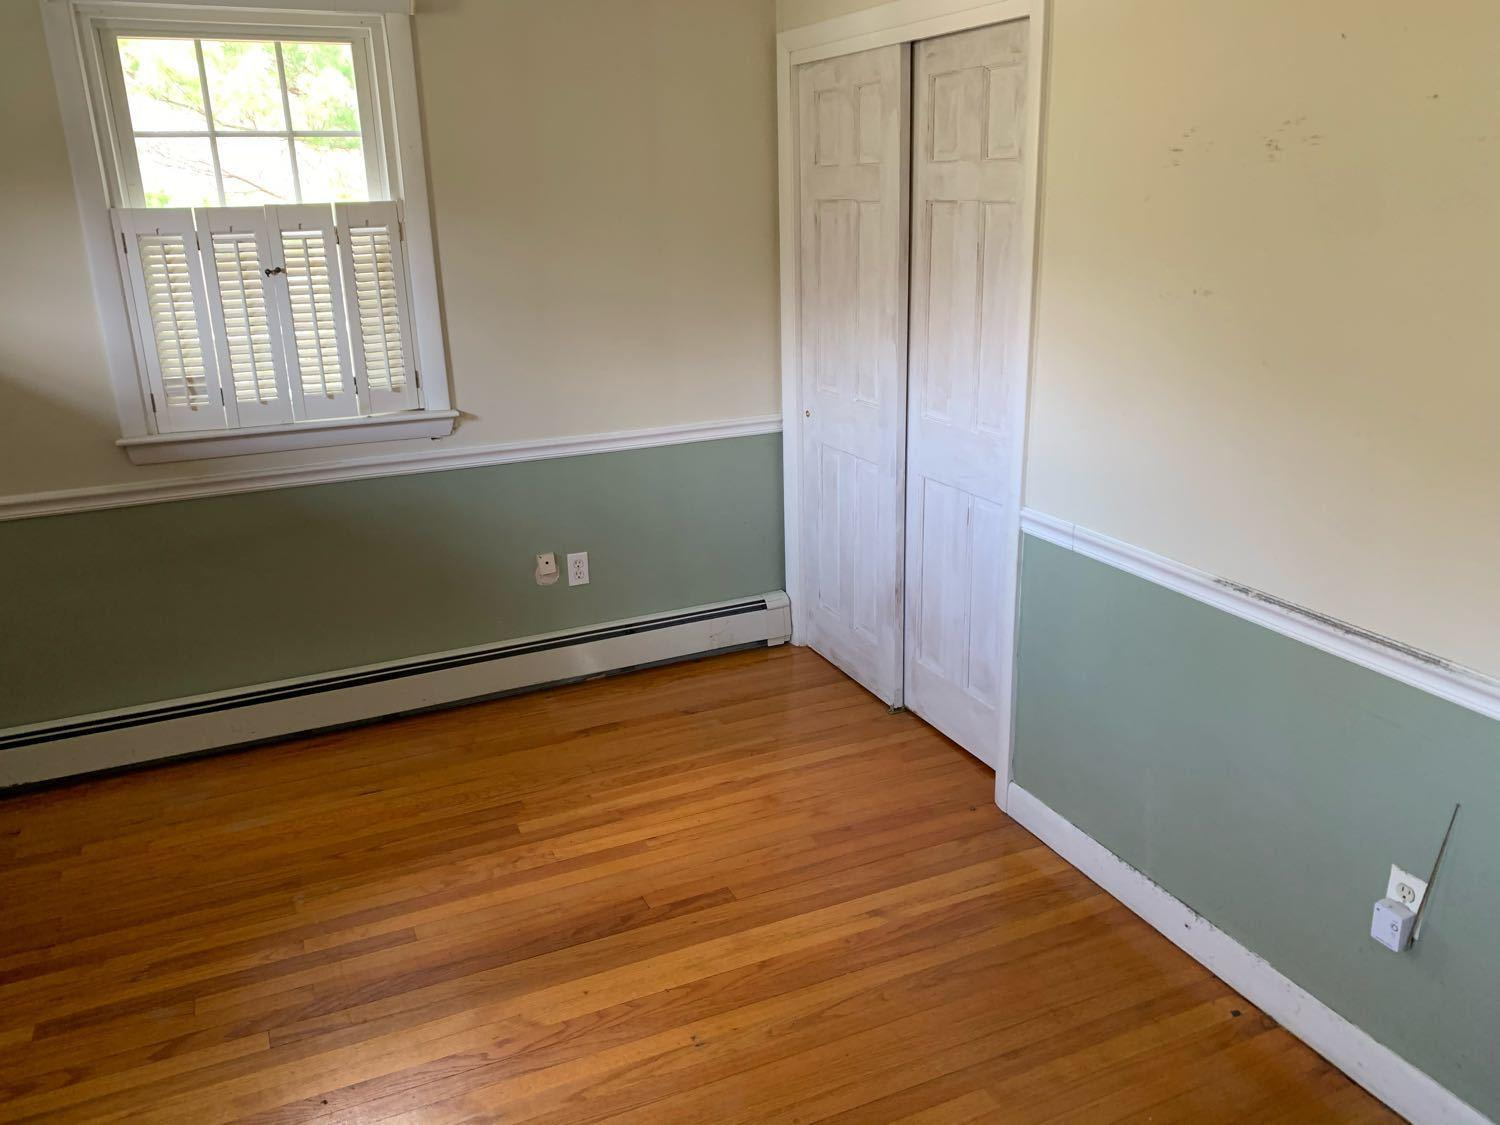 Furniture Removal Service in Sharon, MA - After Photo